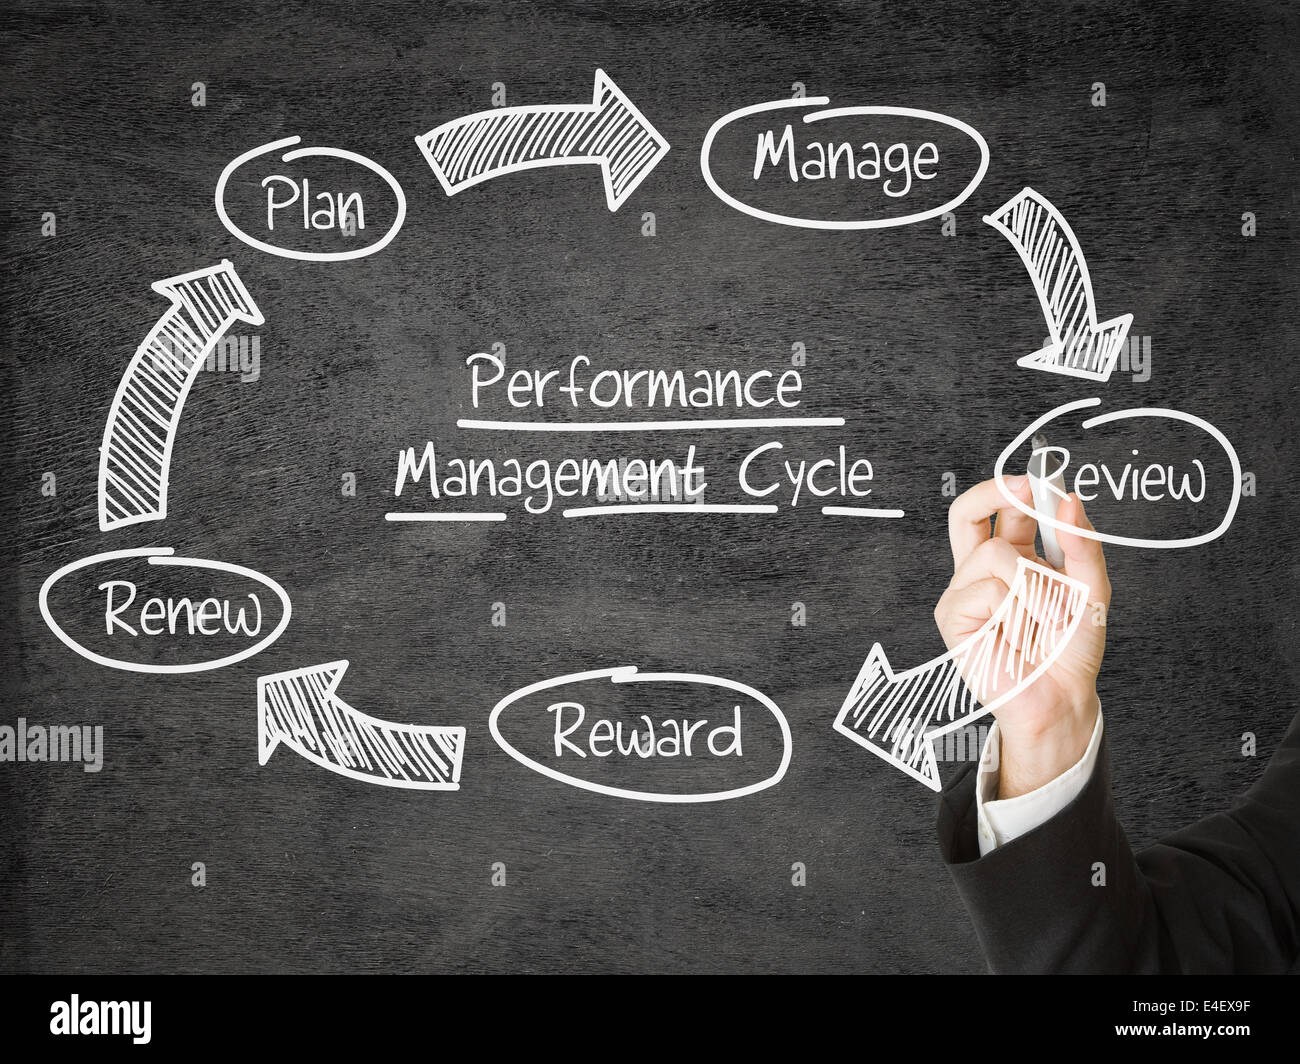 Businessman drawing Performance Management Cycle schema on screen - Stock Image